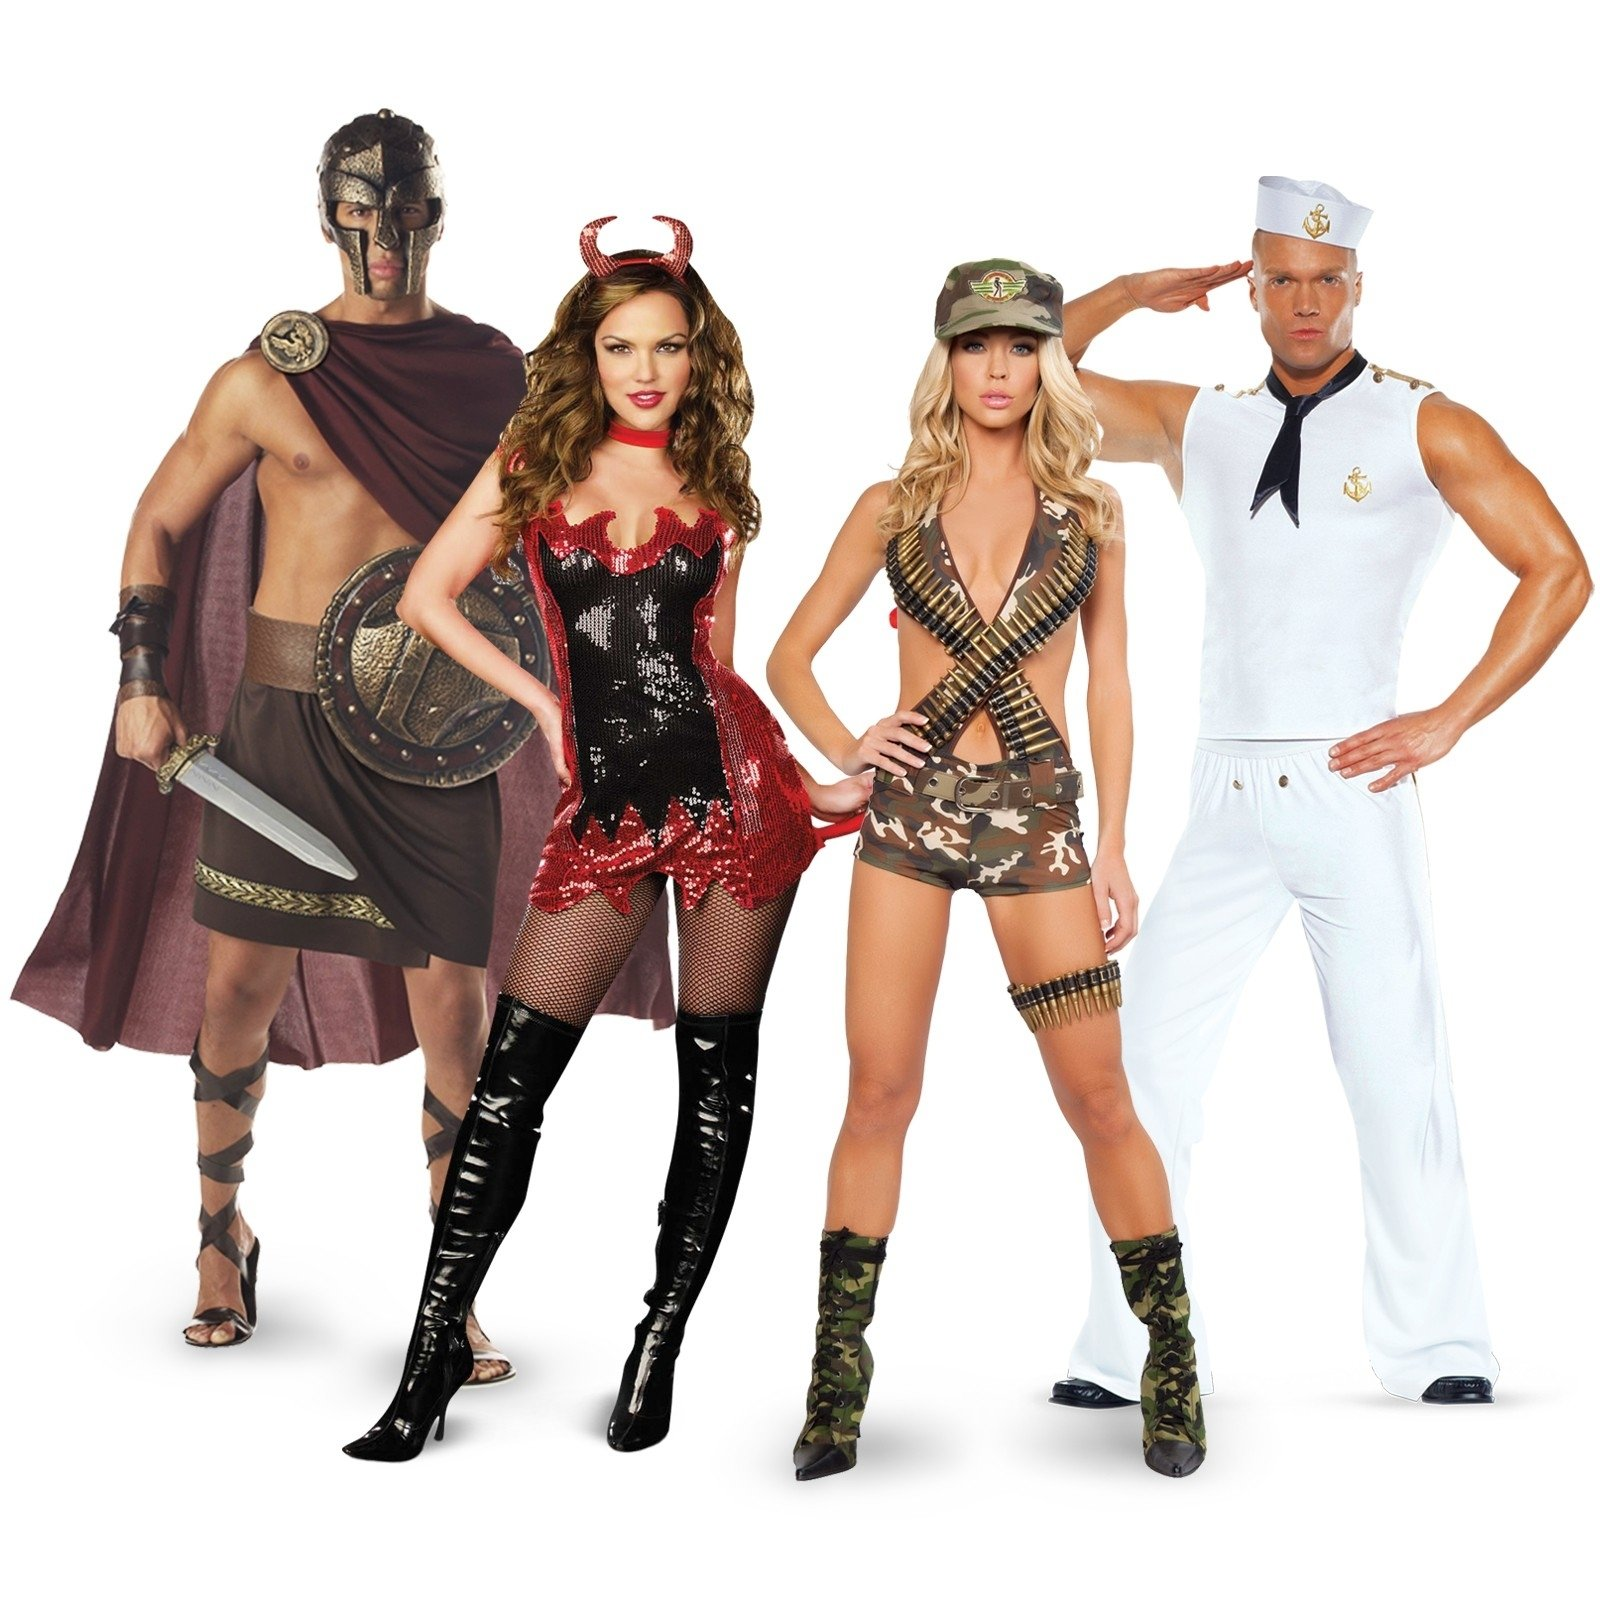 10 elegant his and her costume ideas his her halloween costumes the halloween